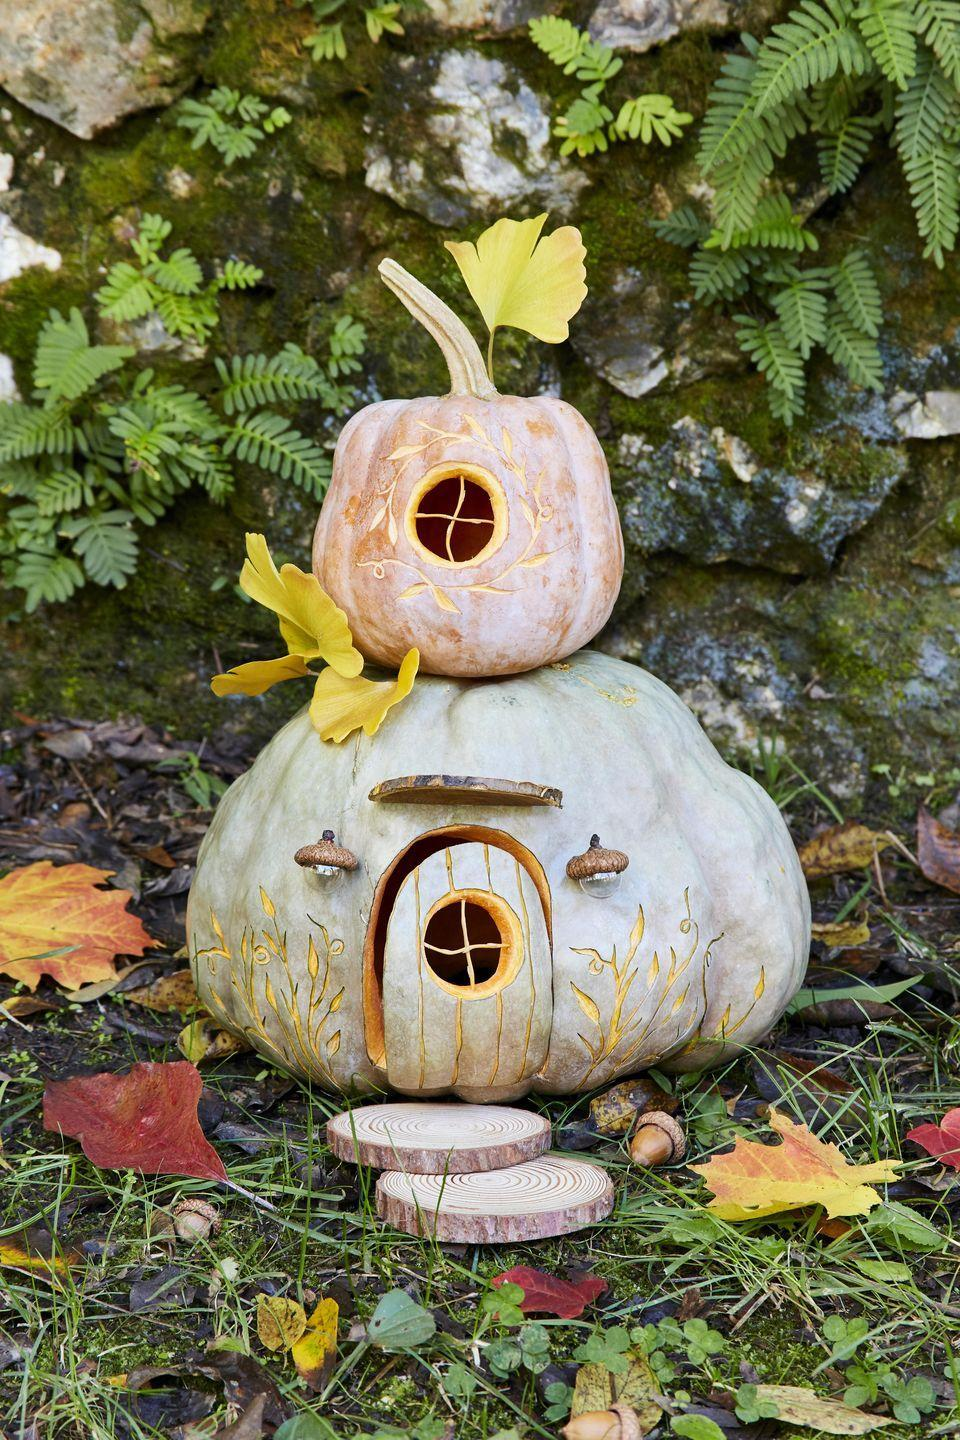 <p>Little hands will love helping create and keeping and eye out for the gnomes that are surely going to move into this sweet little gourd cottage. To display, try setting on a table on a soft bed of moss.</p><p><strong>To make:</strong> Cut a hole in the bottom of a medium blue Hubbard squash; scoop out the pulp and seeds. Cut out the door and circular door window. Etch lines in the door with a linoleum carving tool and insert toothpicks (shortened if necessary) to create window muttons. Lightly draw flower design on either side of door with a pencil and use linoleum carving tool to etch out. Insert the door into the opening and hold in place with toothpicks. Hot glue mini glass balls into acorn caps to create lights; attach to pumpkin with hot glue. Cut half to 2/3 off of a wood round; attach to pumpkin, above the door, to create an awning.</p><p>Cut a hole in the bottom of a small brown or green acorn squash; scoop out the pulp and seeds. Cut a circular window and insert toothpicks (shortened if necessary) to create window muttons. Lightly draw flower design around window with a pencil and use linoleum carving tool to etch out. Stack pumpkins and add wood round steps and gingko leaves.</p>